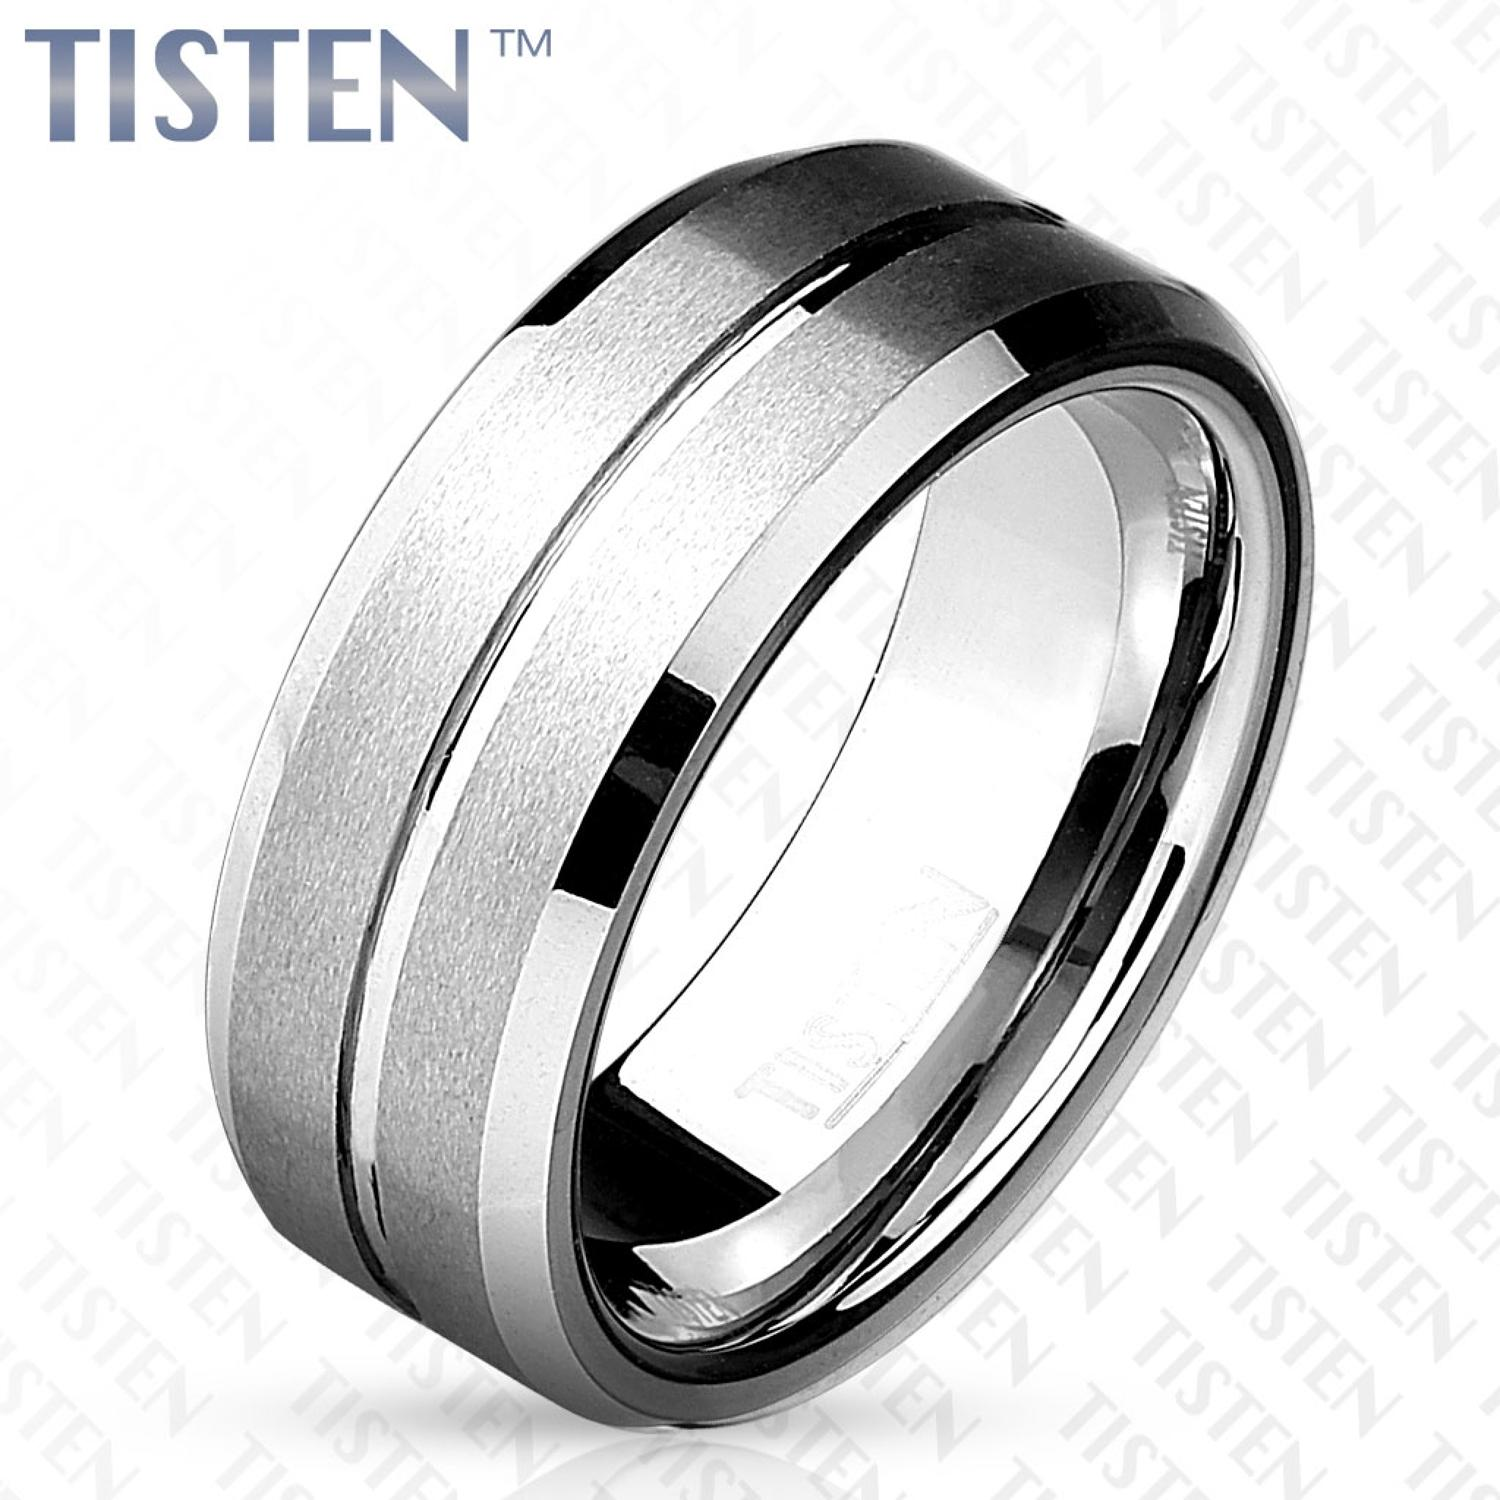 Matte Grooved Line Centre with Beveled Edge Tisten Ring